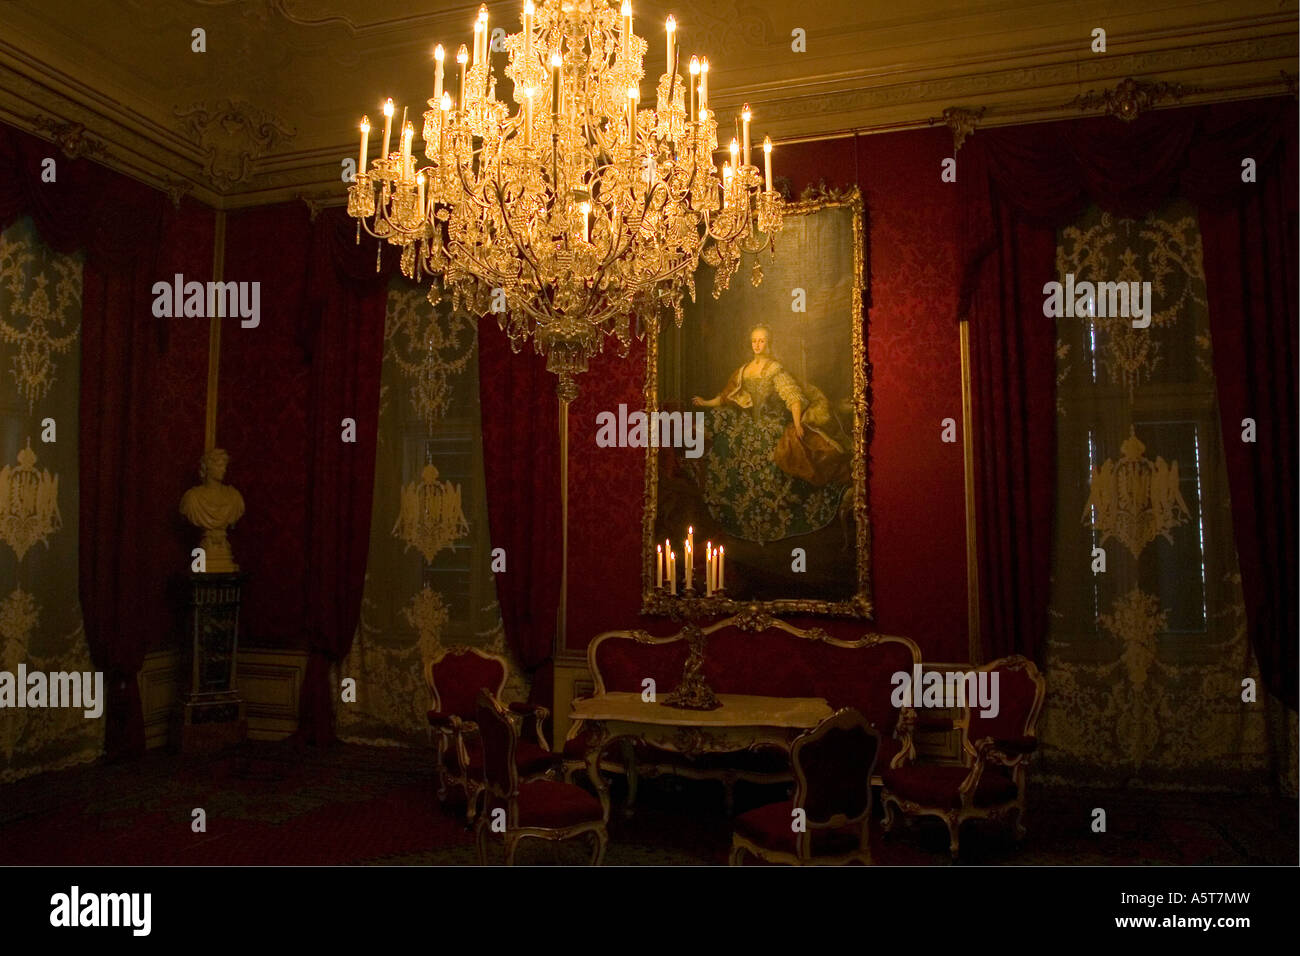 Portrait Of Marie Antoinette With Chandalier And Furniture Interior Of  Schonbrunn Palace Vienna Austria Europe